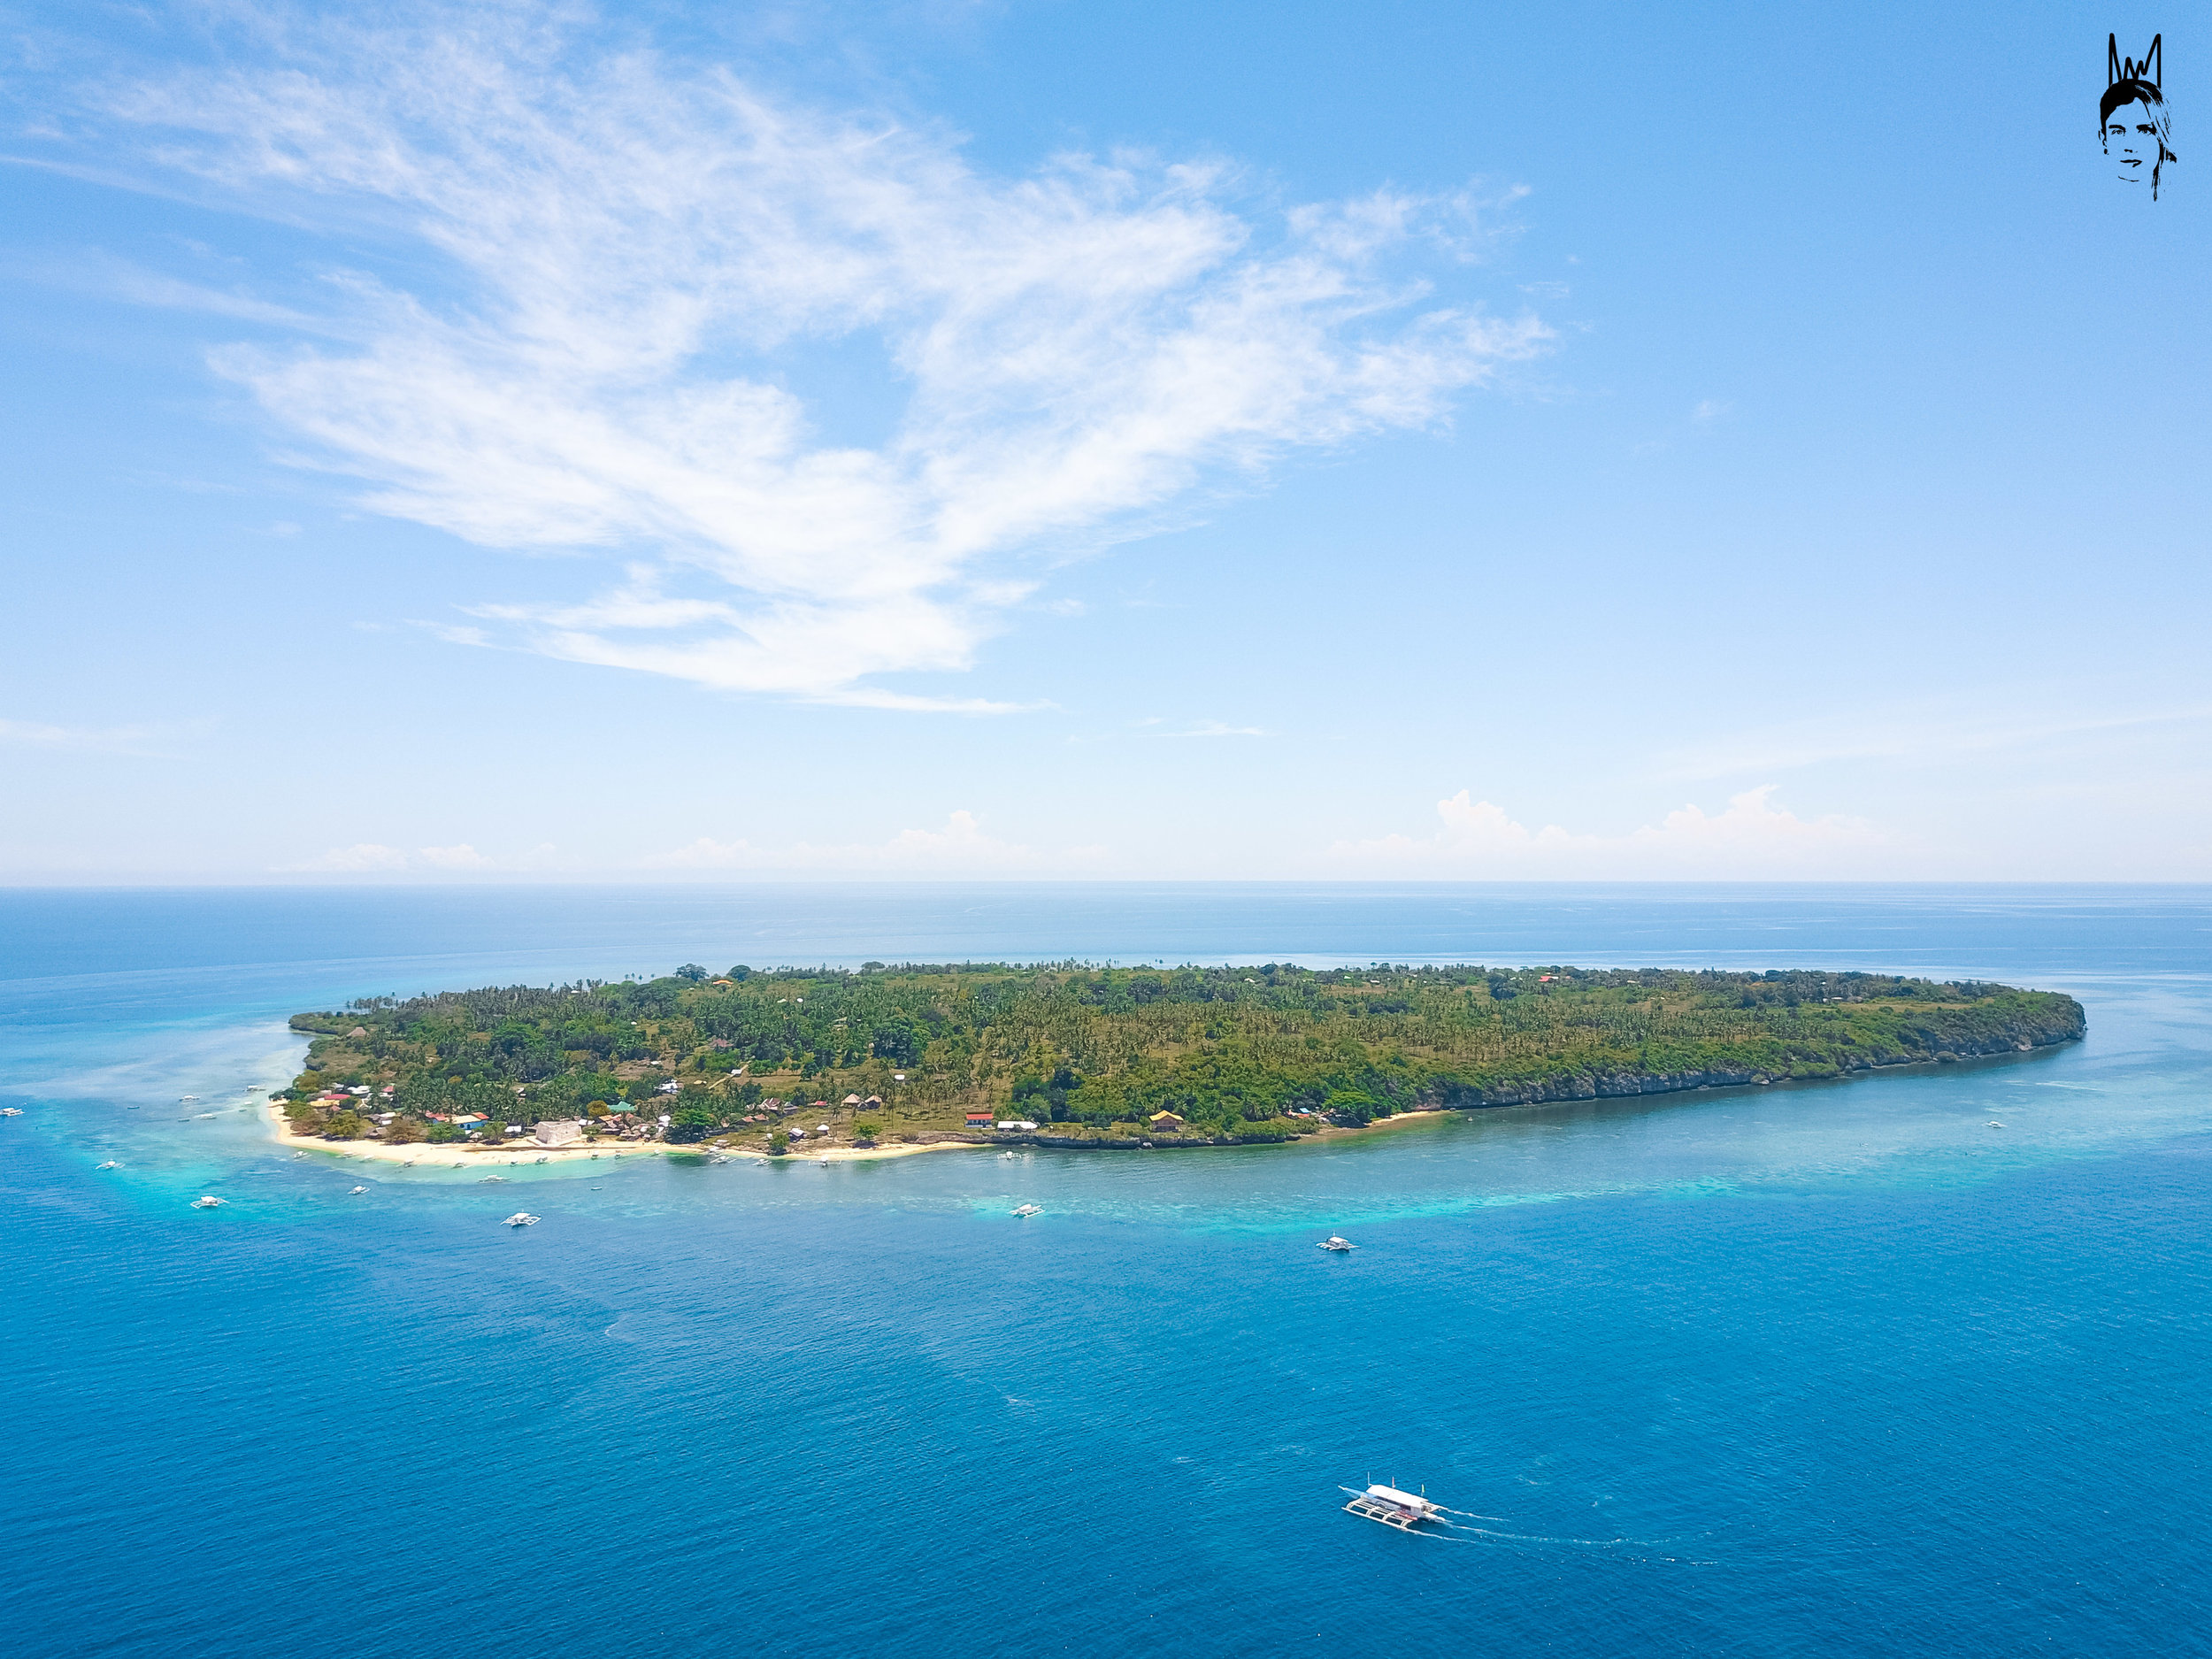 Pamilacan Island, the lunch stop off with a beautiful coral garden for snorkelling